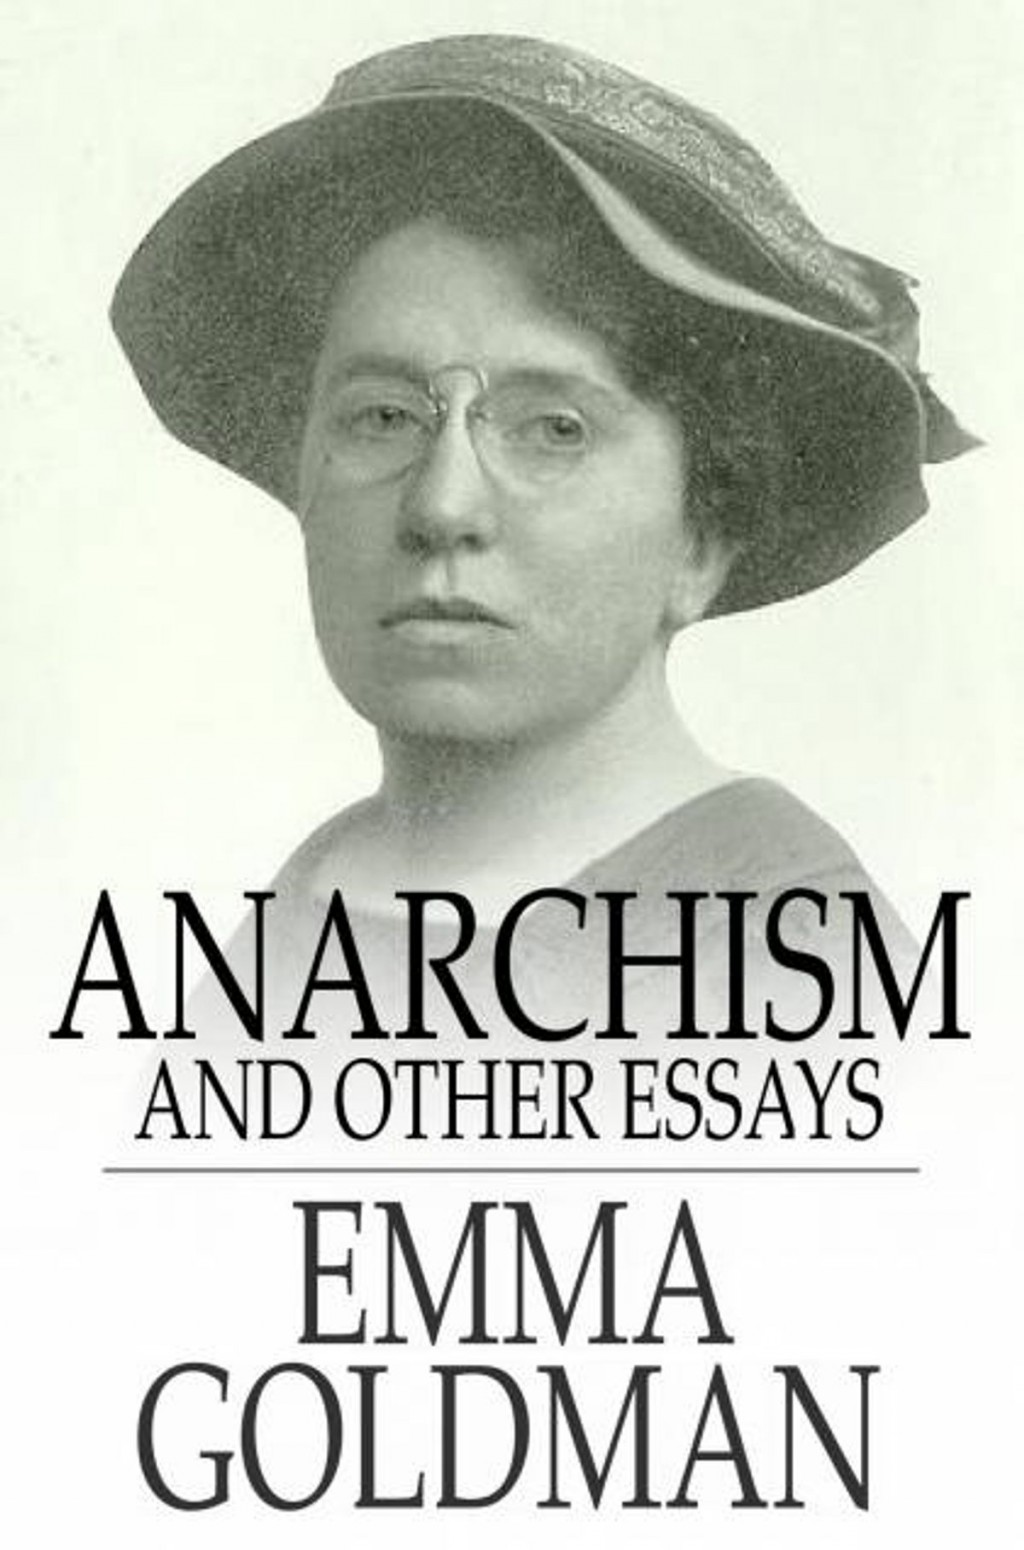 009 Anarchism And Other Essays Essay Incredible Emma Goldman Summary Mla Citation Large